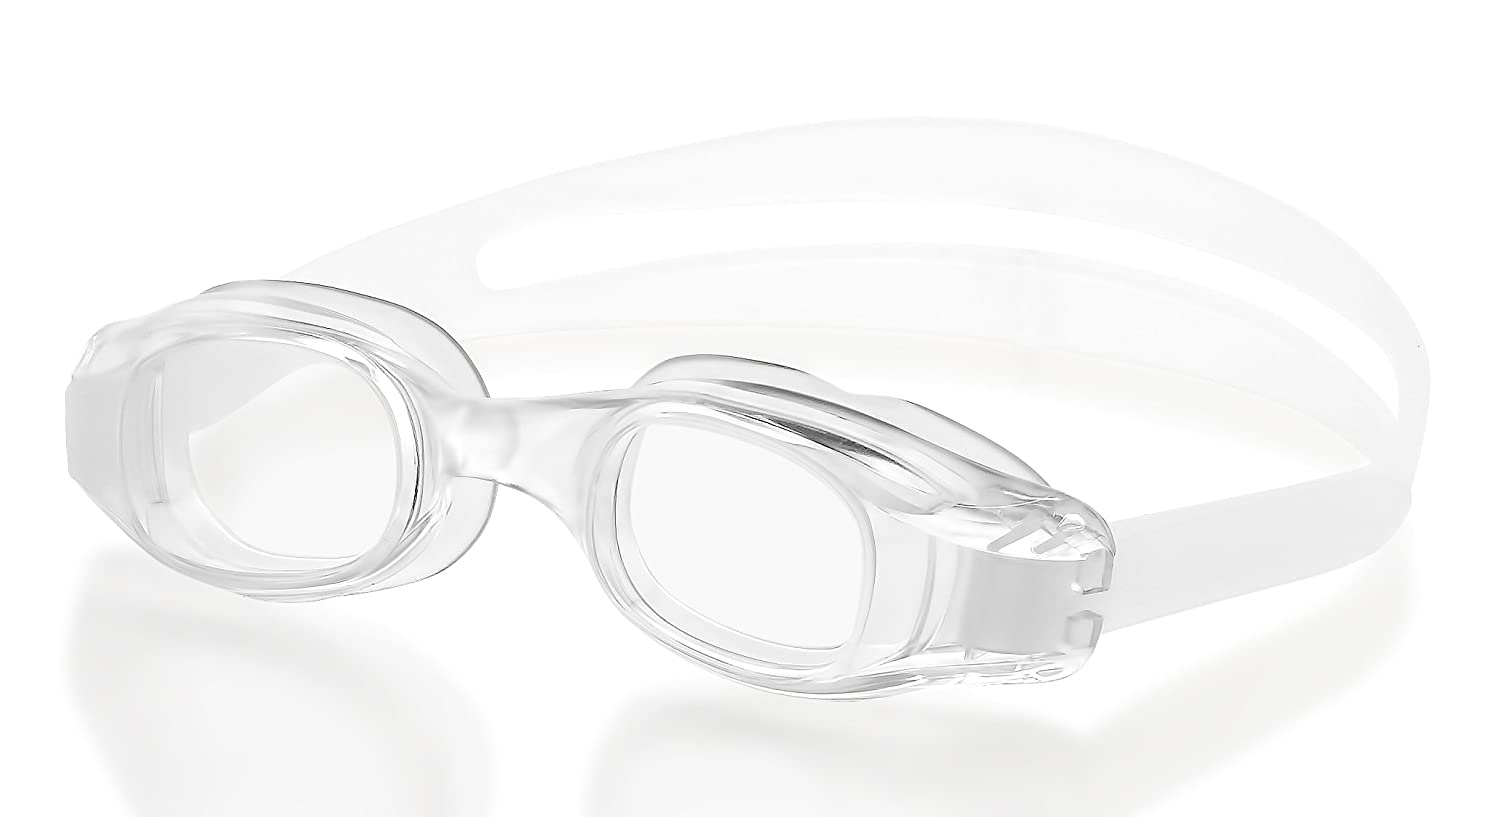 984aabac554 Swimming Goggles for Kids and Early Teens (ages 7-12) - Universal Leak  Resistant Eye Fit